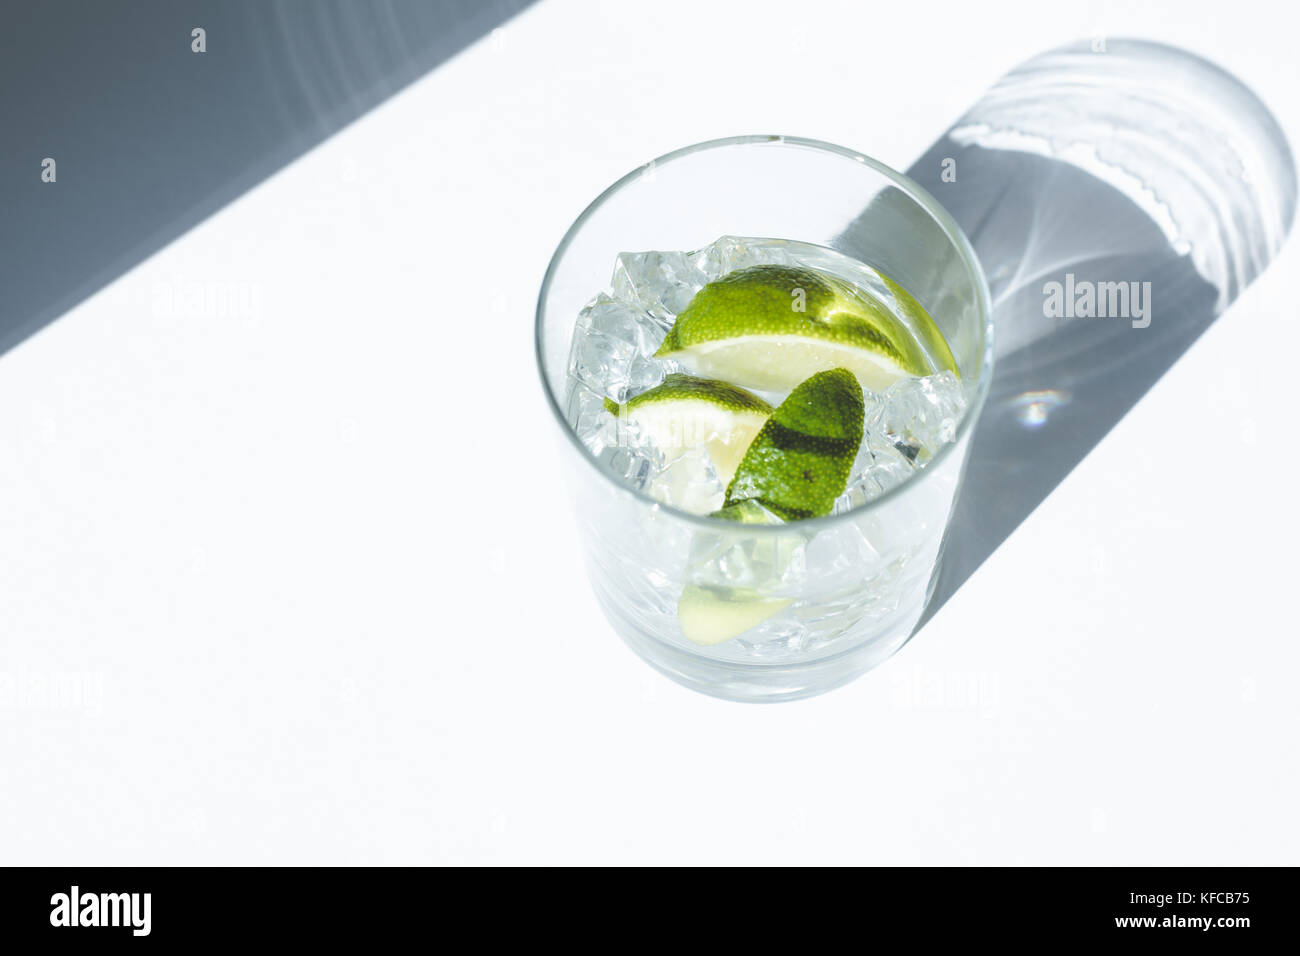 Gin Tonic cocktail  - Stock Image